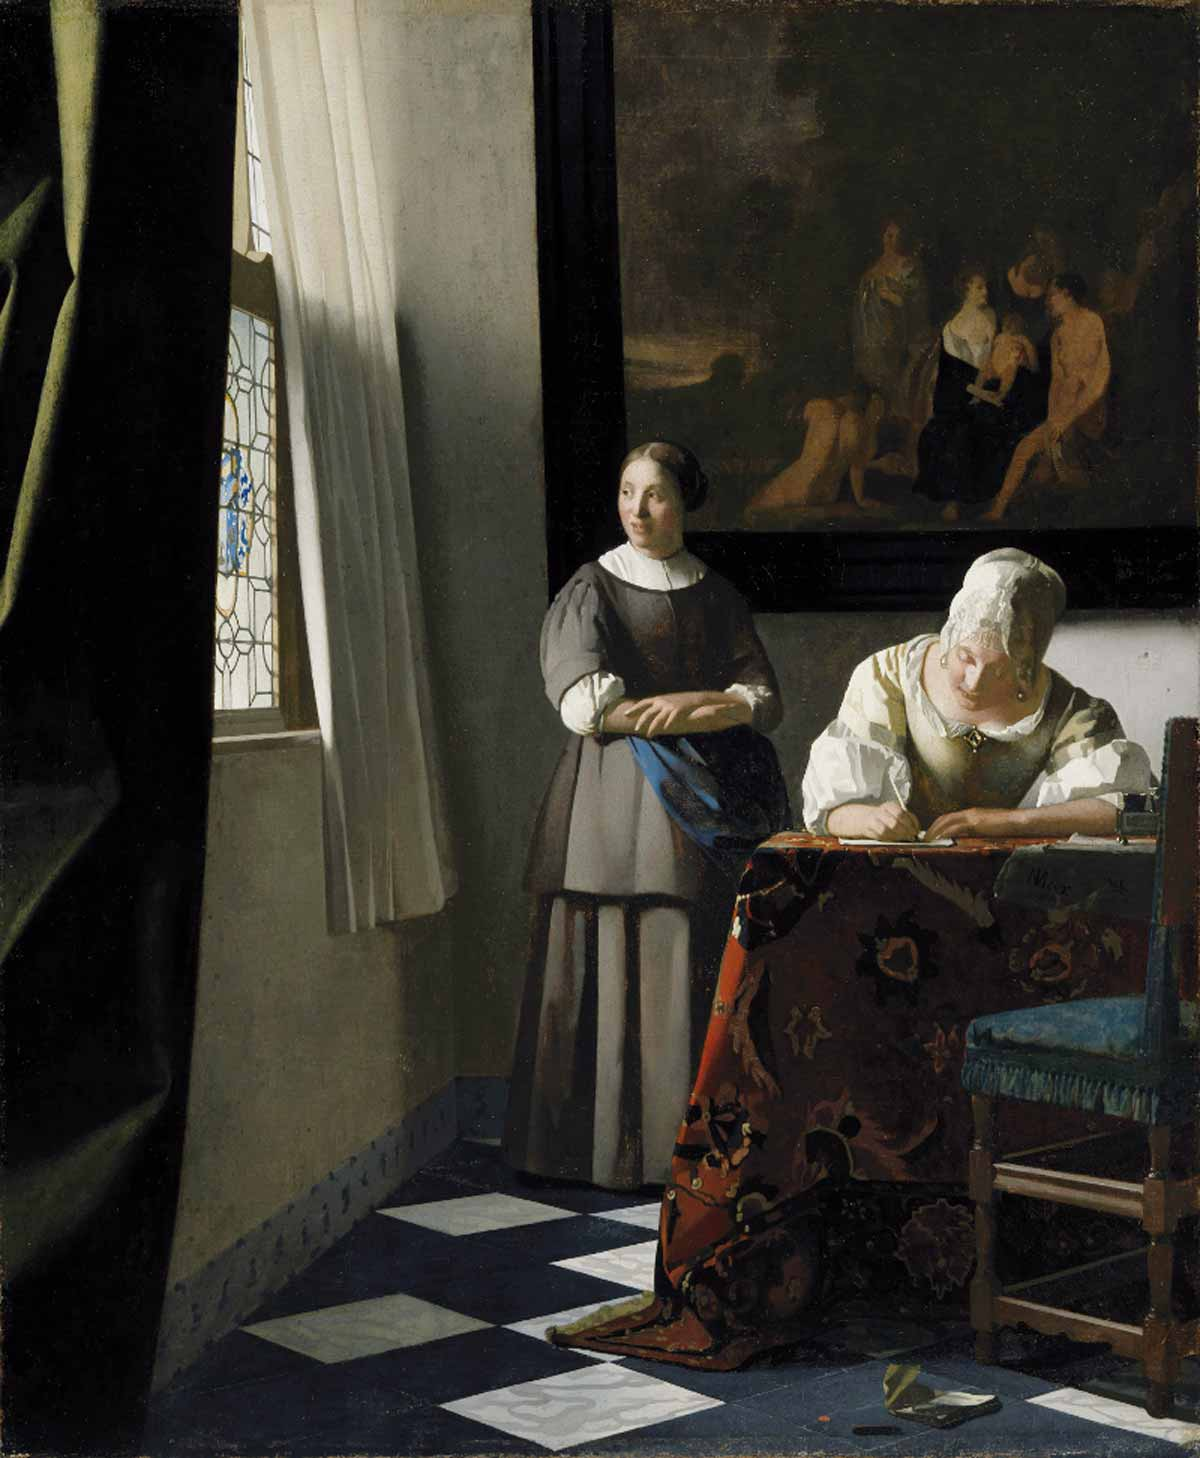 Stolen painting Jan Vermeer: Lady Writing a Letter with her Maid (1671)